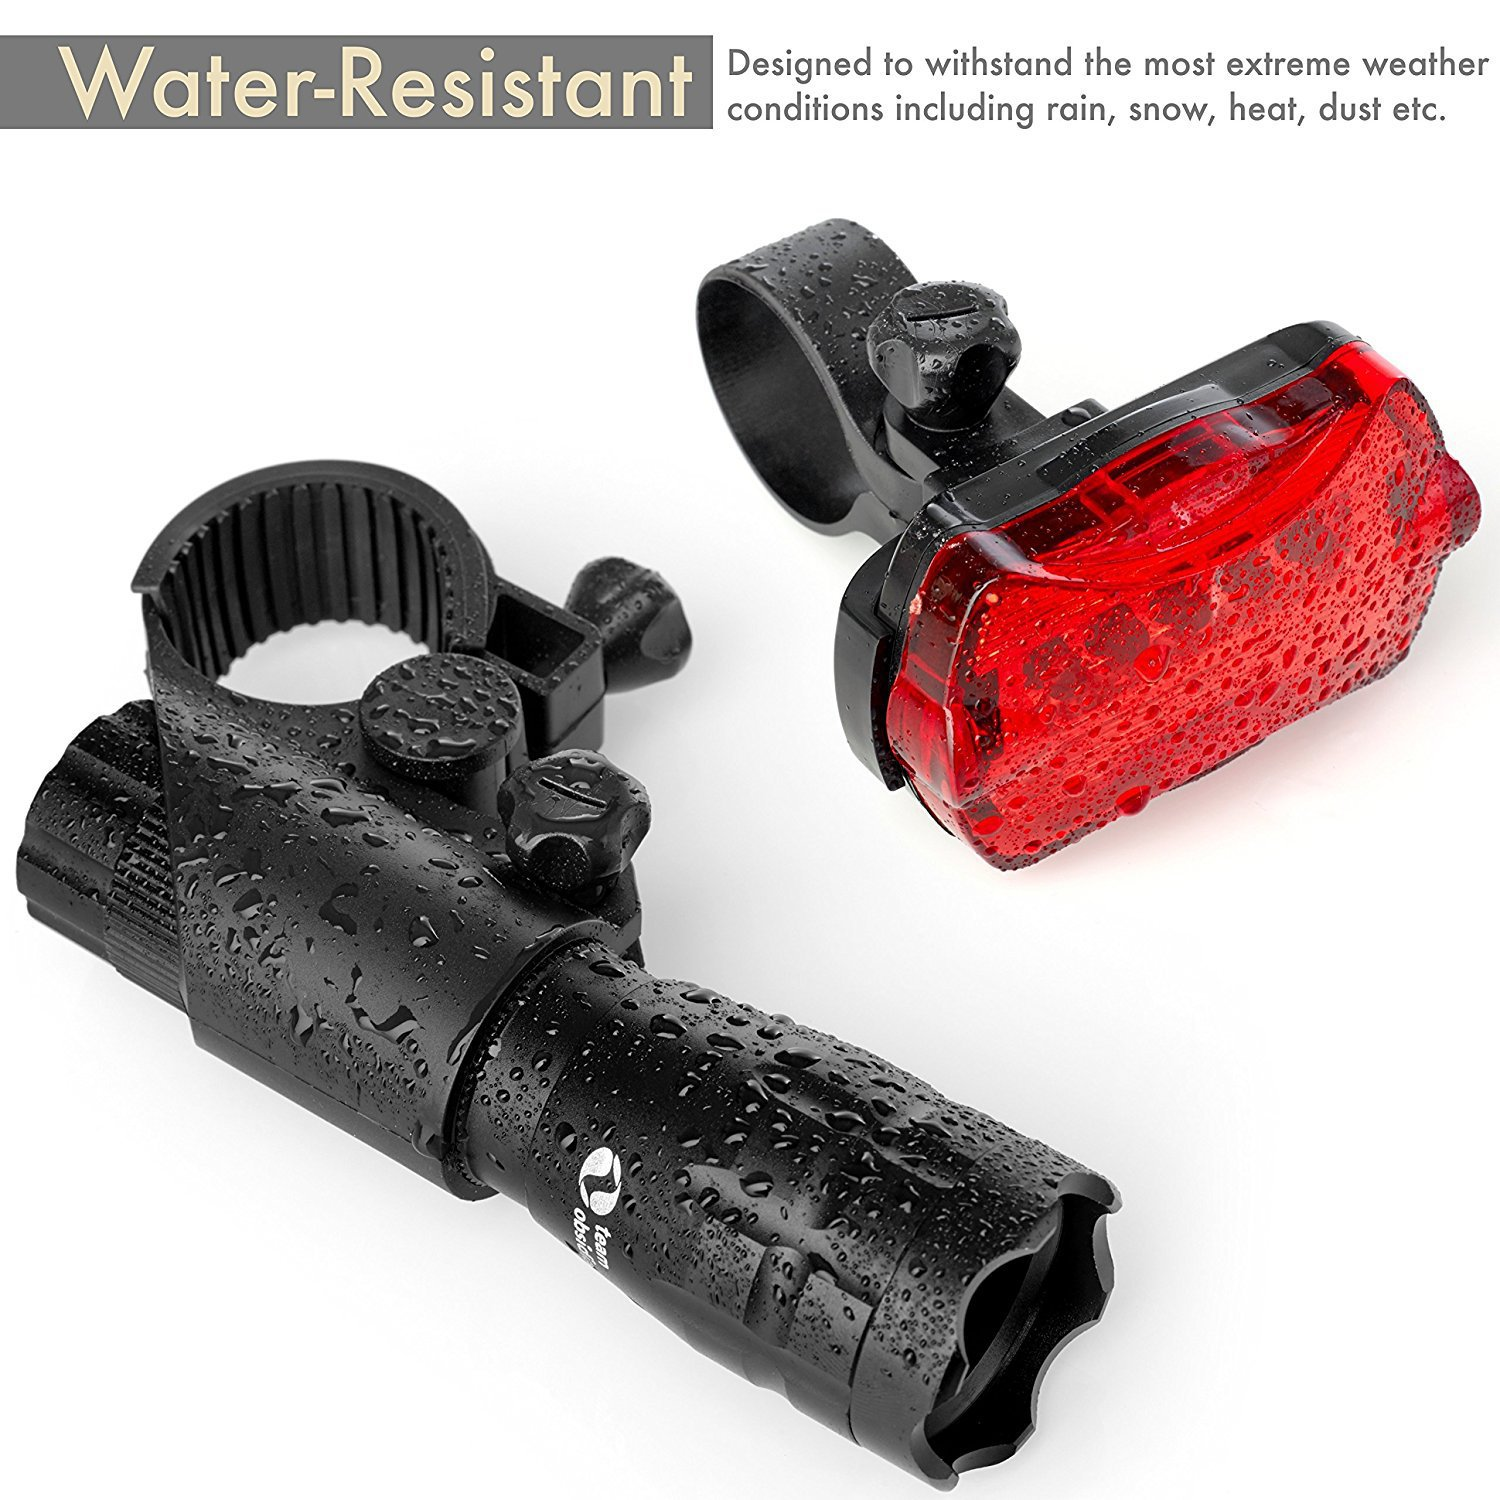 Super Bright LED Lights for Your Bicycle - Easy to Mount Headlight and Taillight with Quick Release System